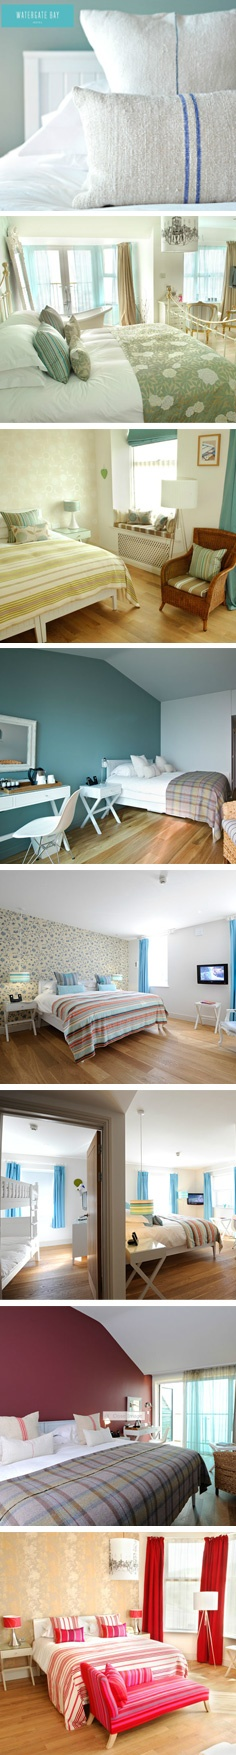 Rooms at Watergate Bay Hotel, Newquay. Win a two-night stay. Enter at www.watergatebay.co.uk/christmas-competition/